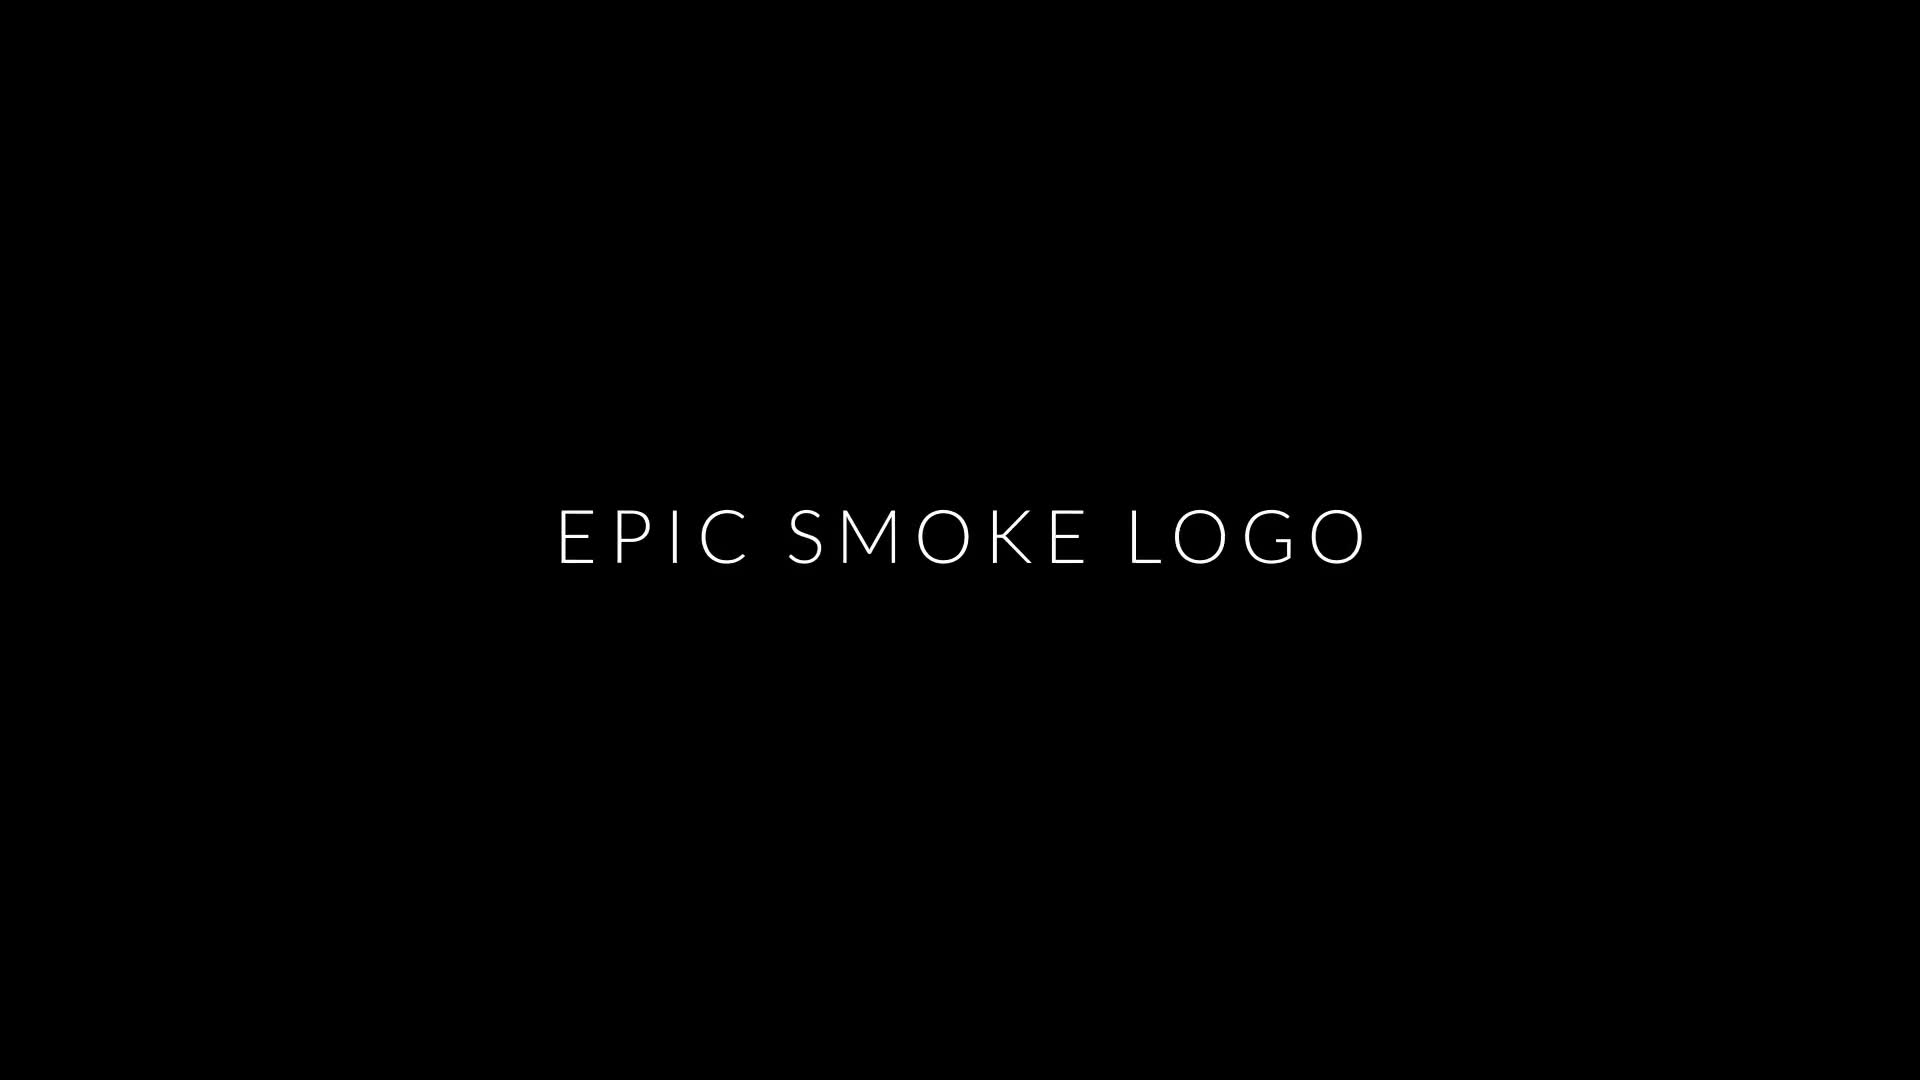 Epic Smoke | Logo Reveal - Download Videohive 22578459